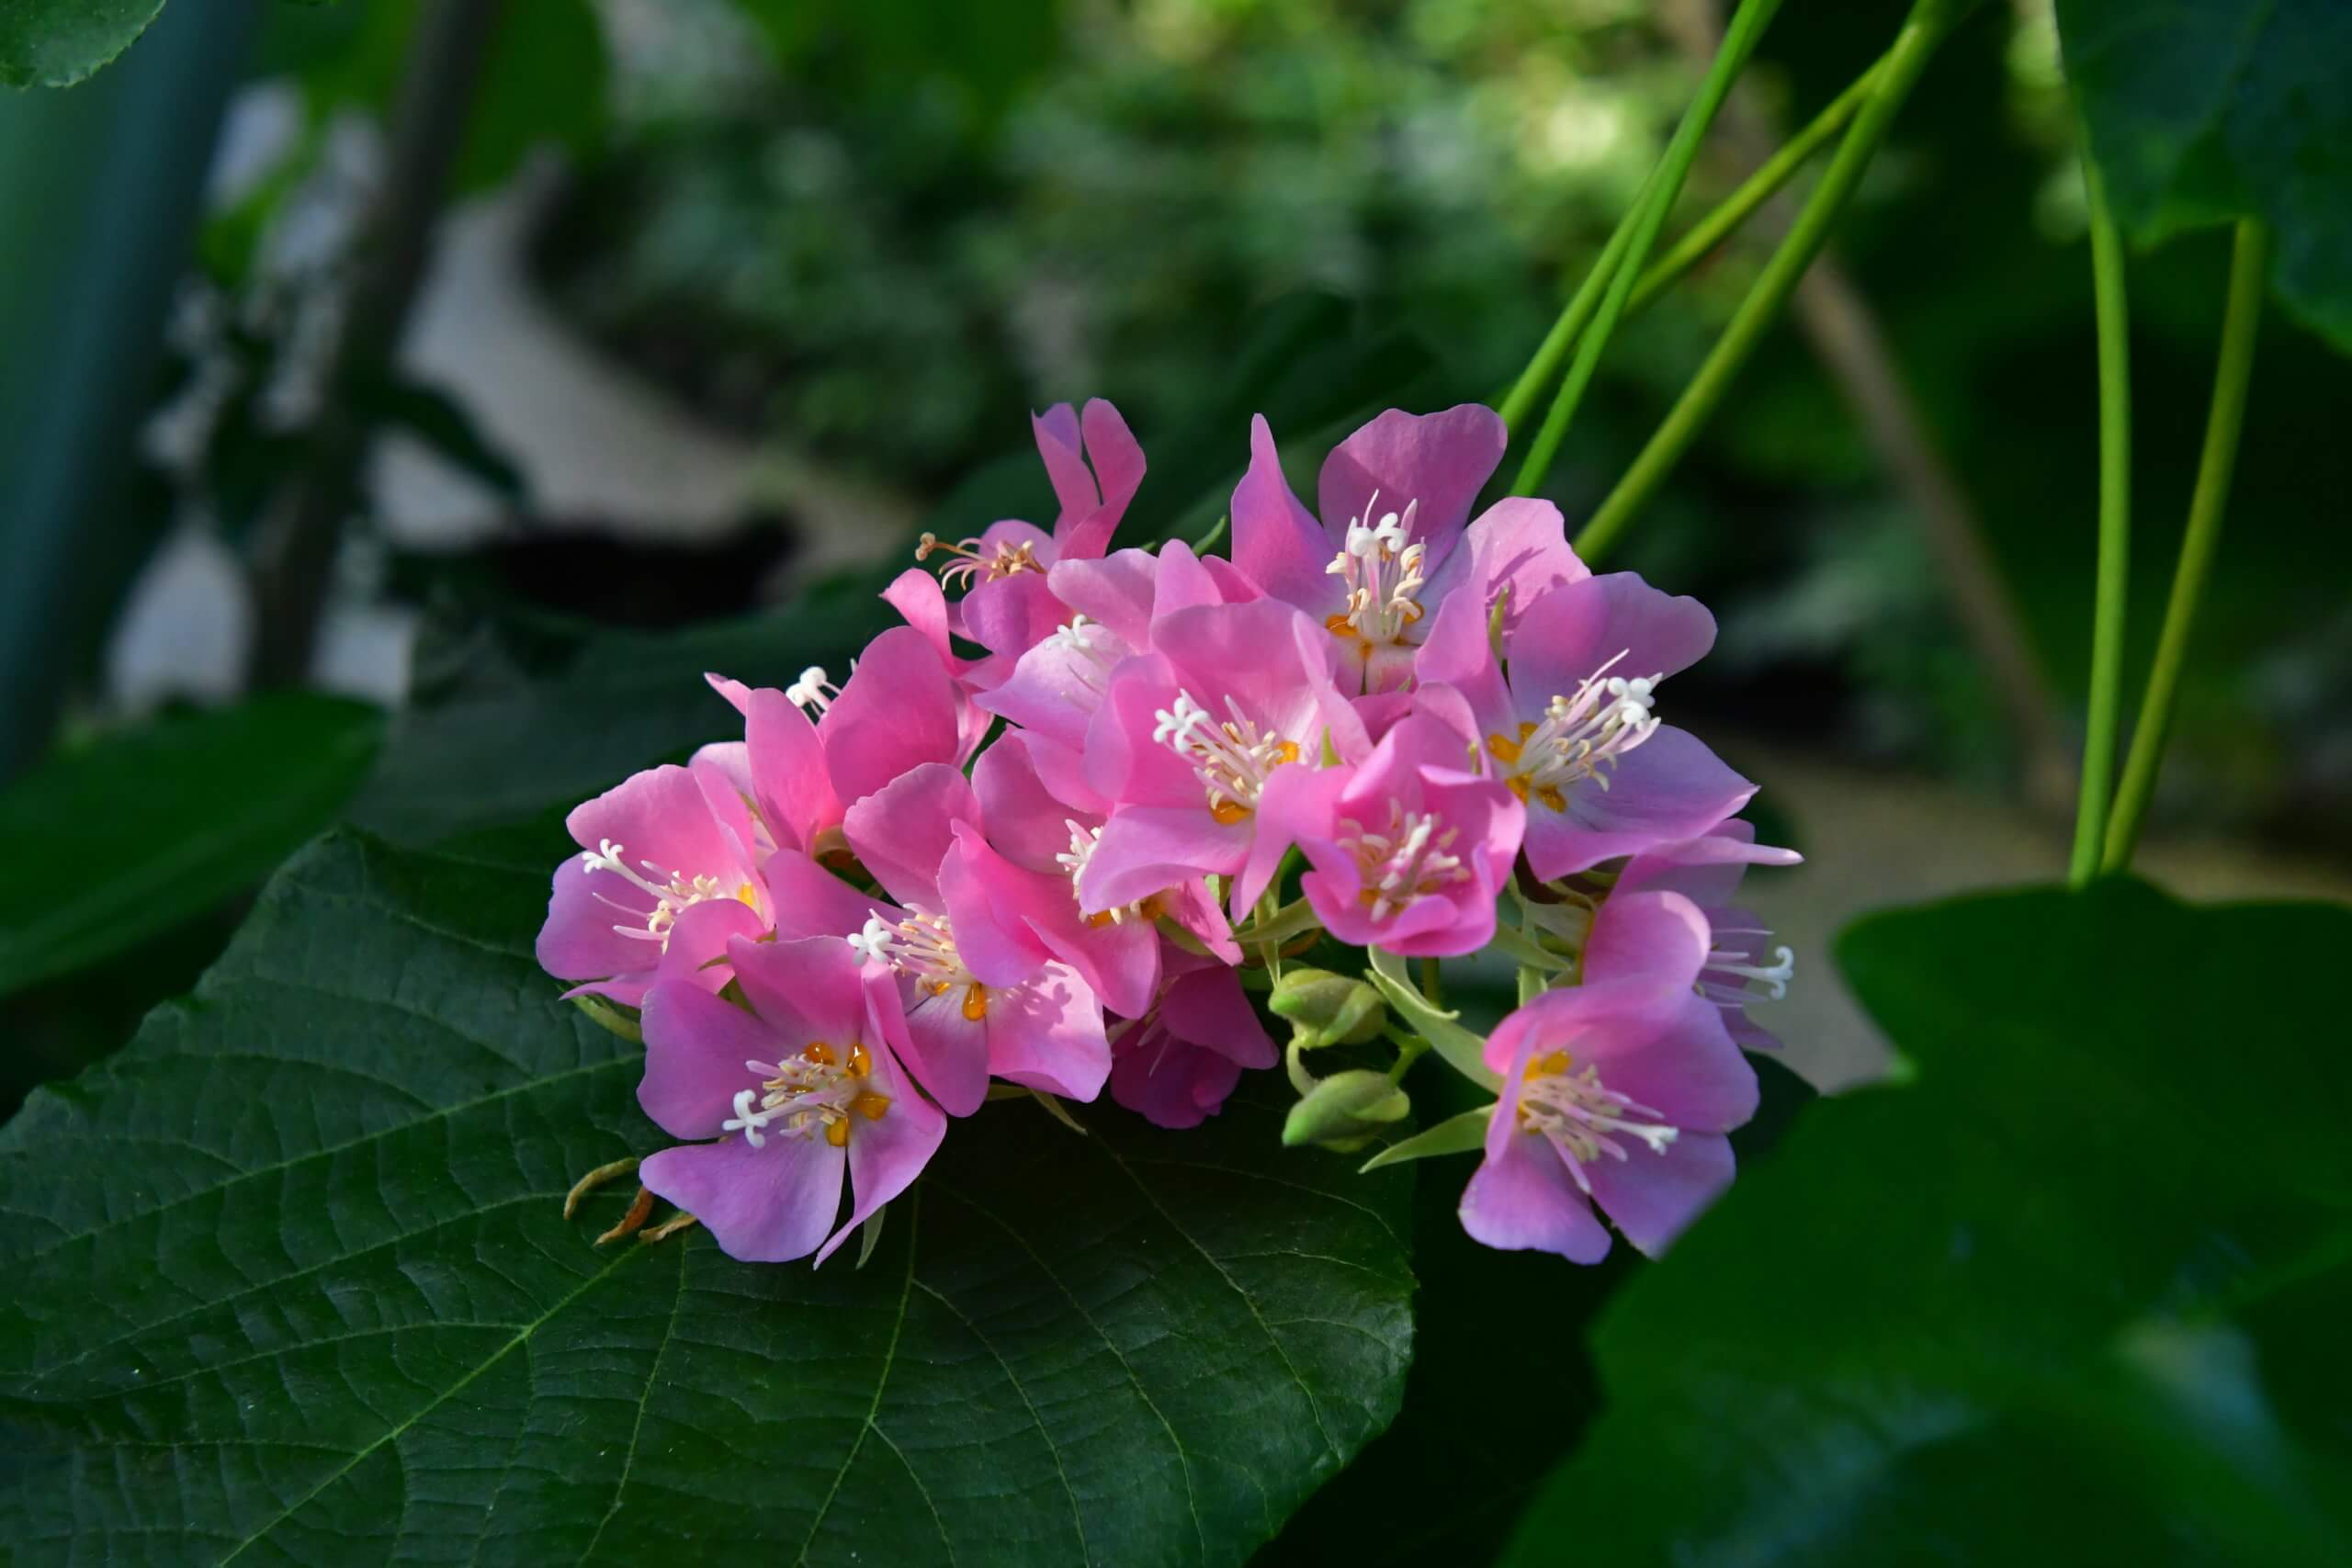 Dombeya burgessiae 'Seminole' stuns with bright pink flowers against the conservatory greenery.